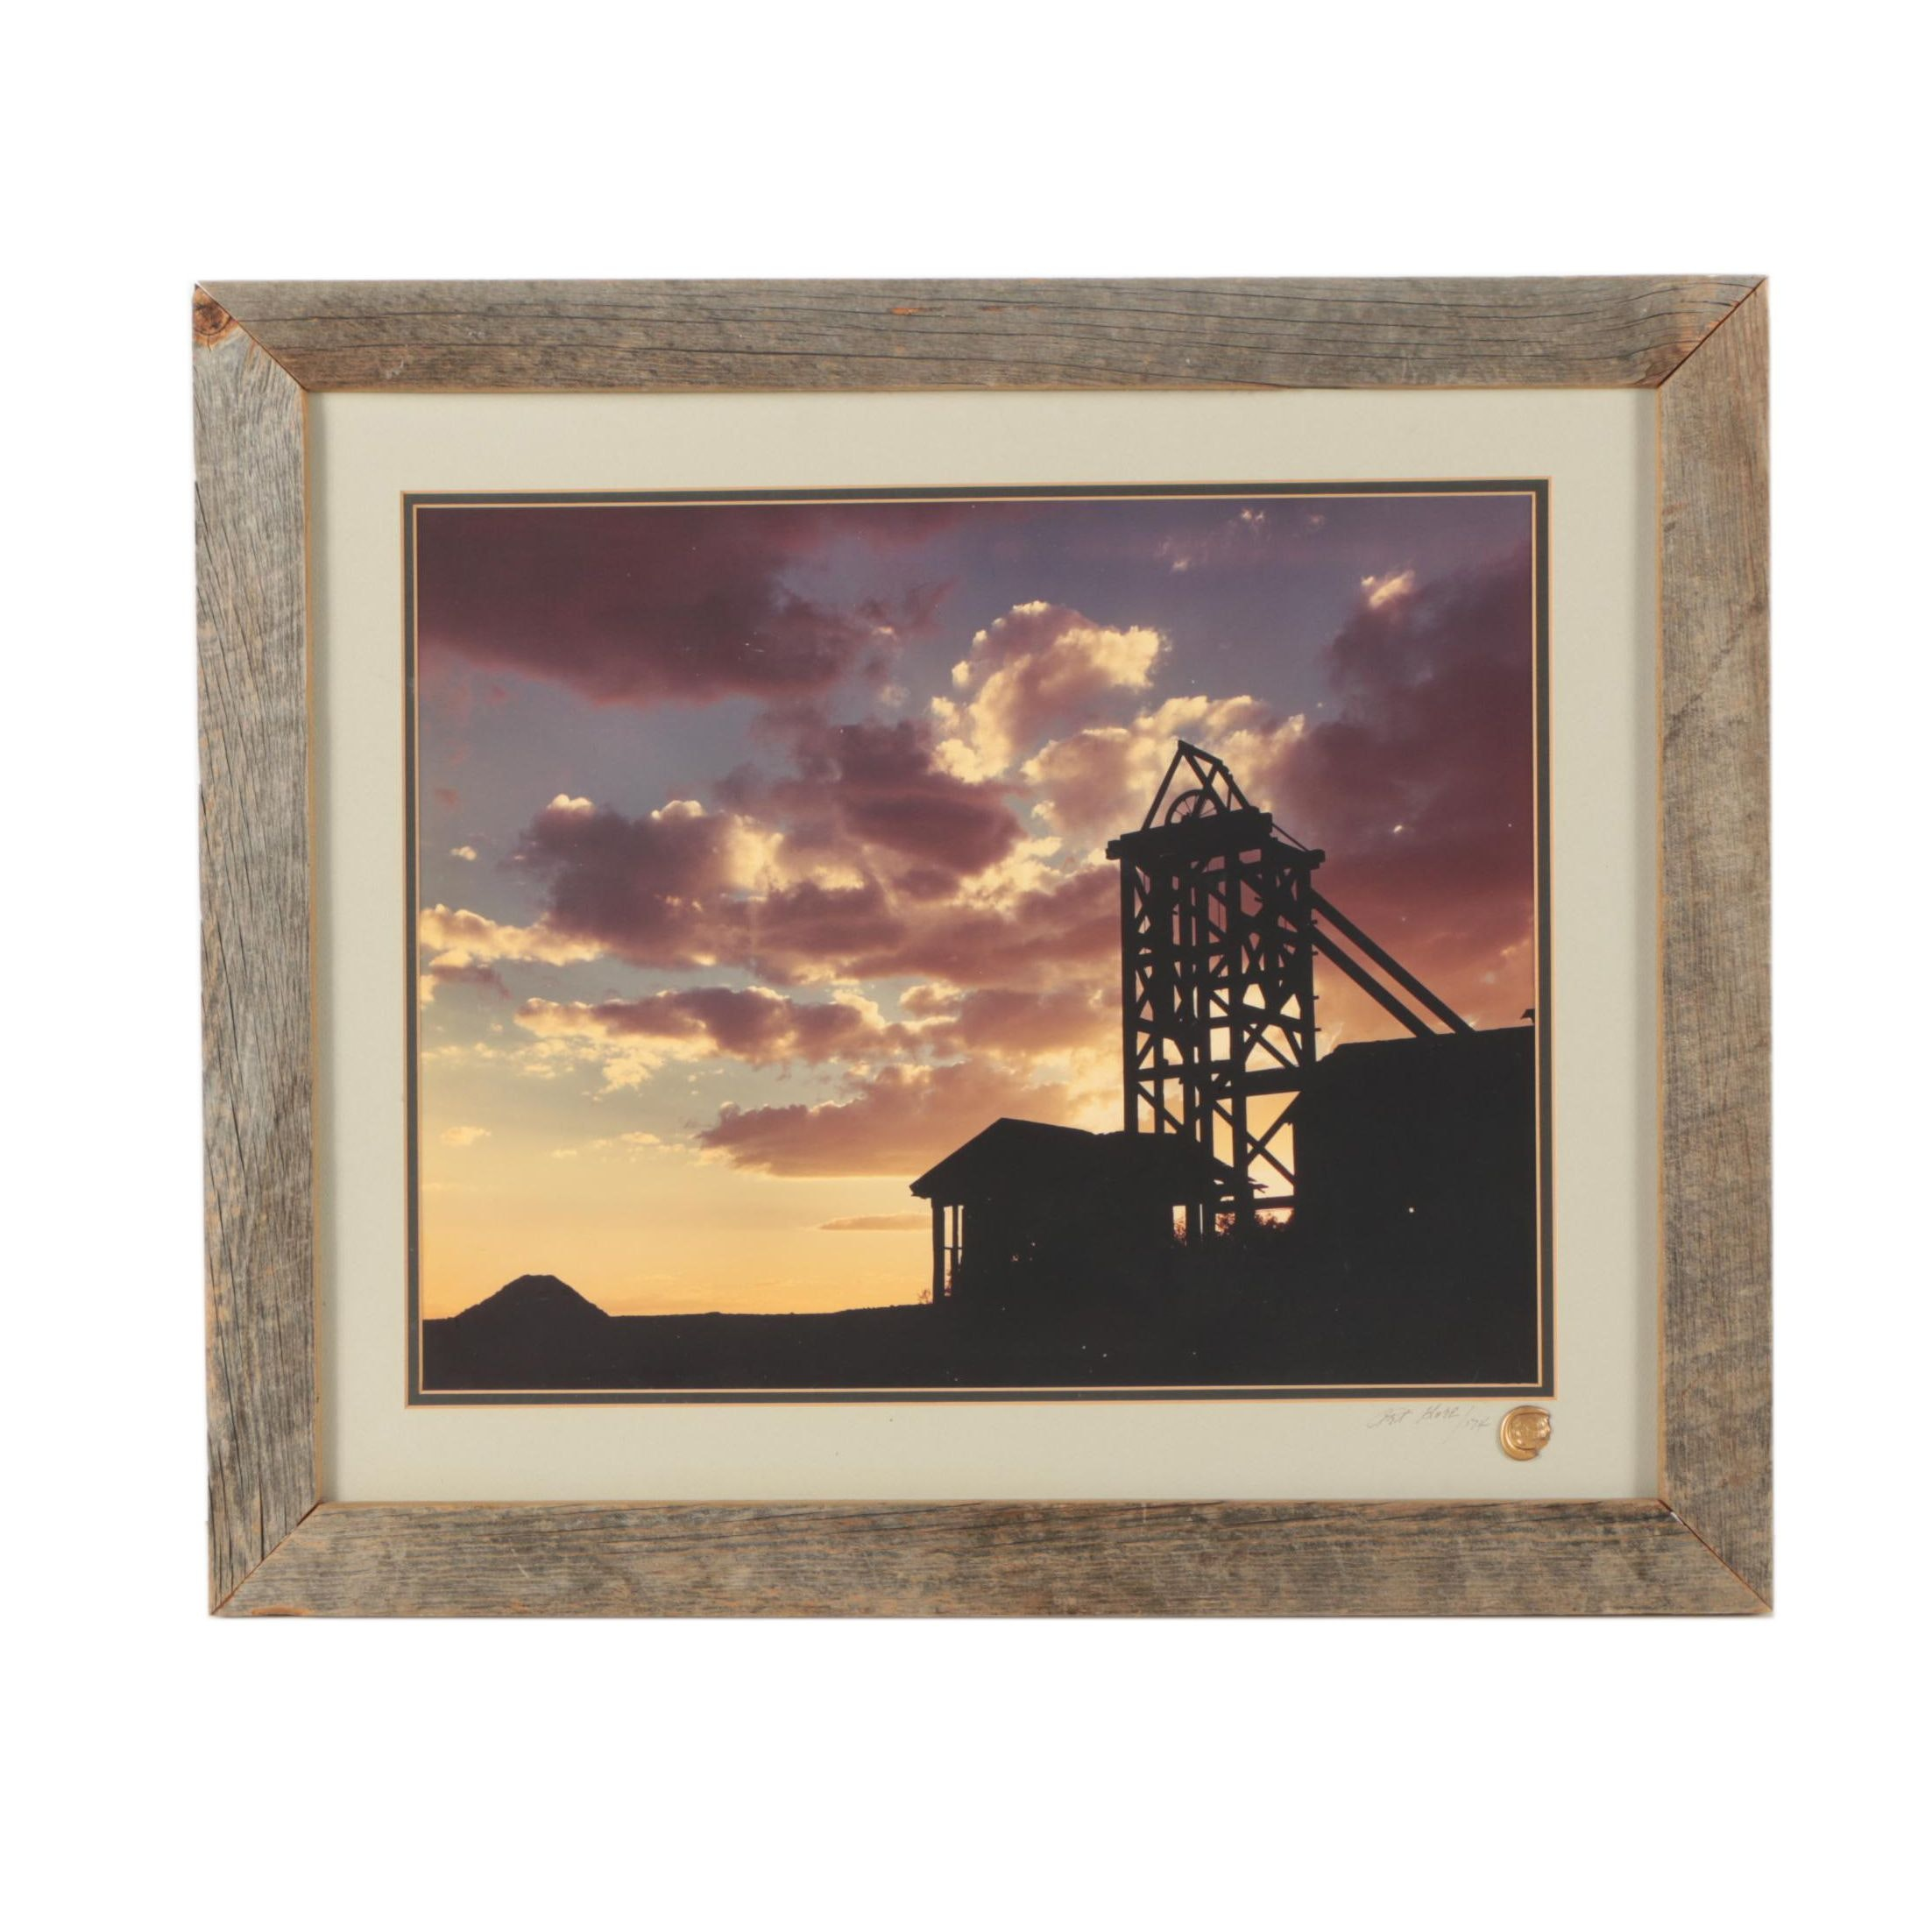 Art Gore 1974 Color Photograph of Rural Factory at Twilight